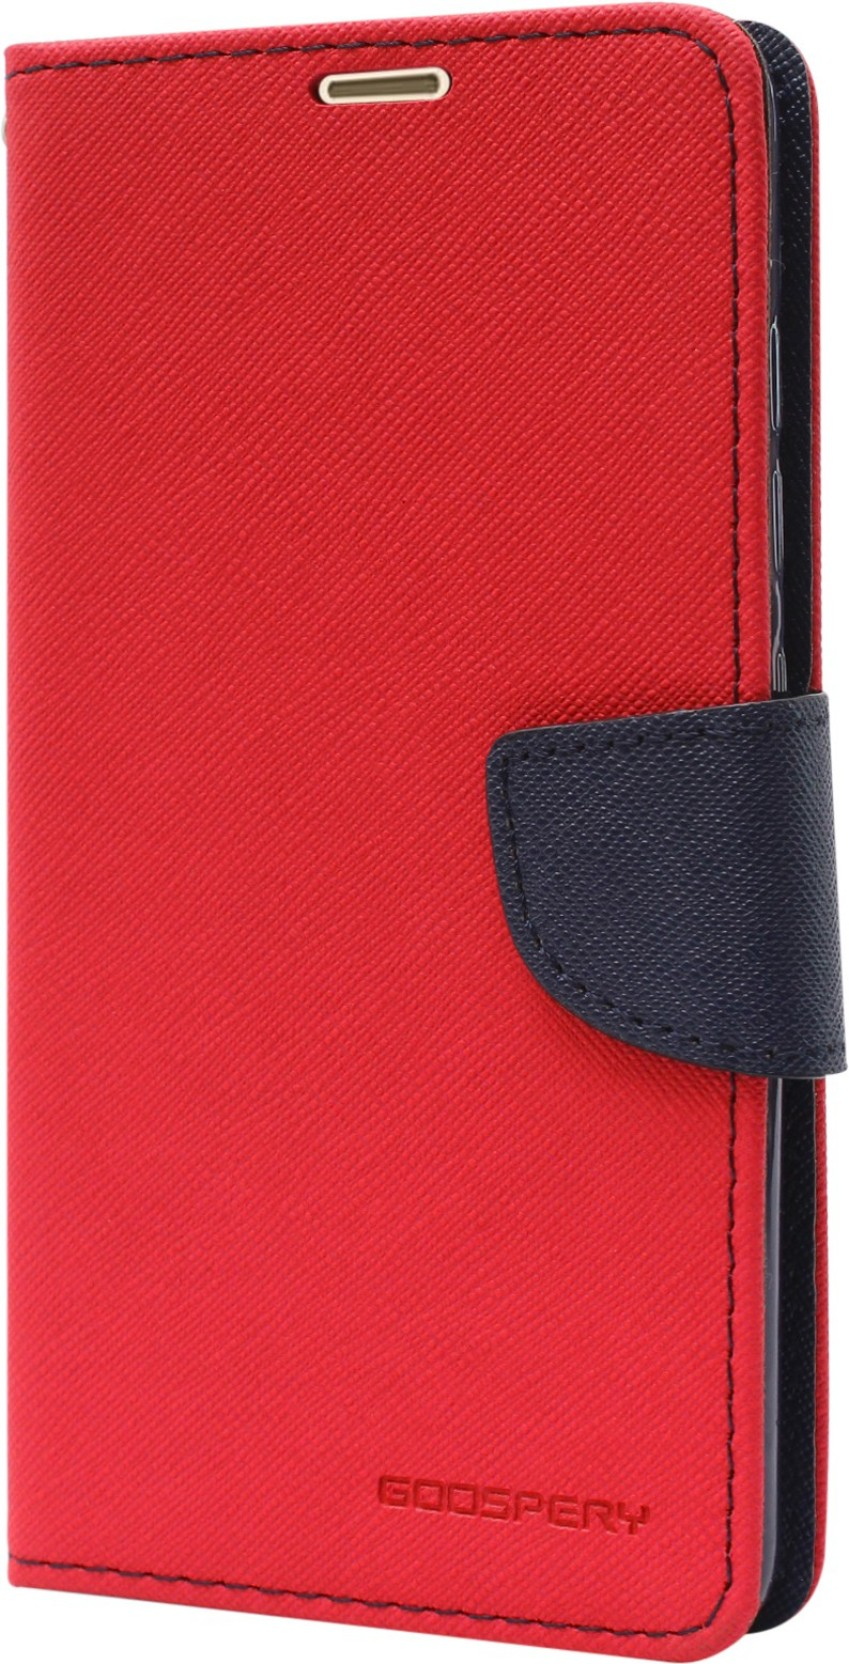 Goospery Wallet Case Cover For Mi Redmi Note 3 Xiaomi 2 Canvas Diary Red Home